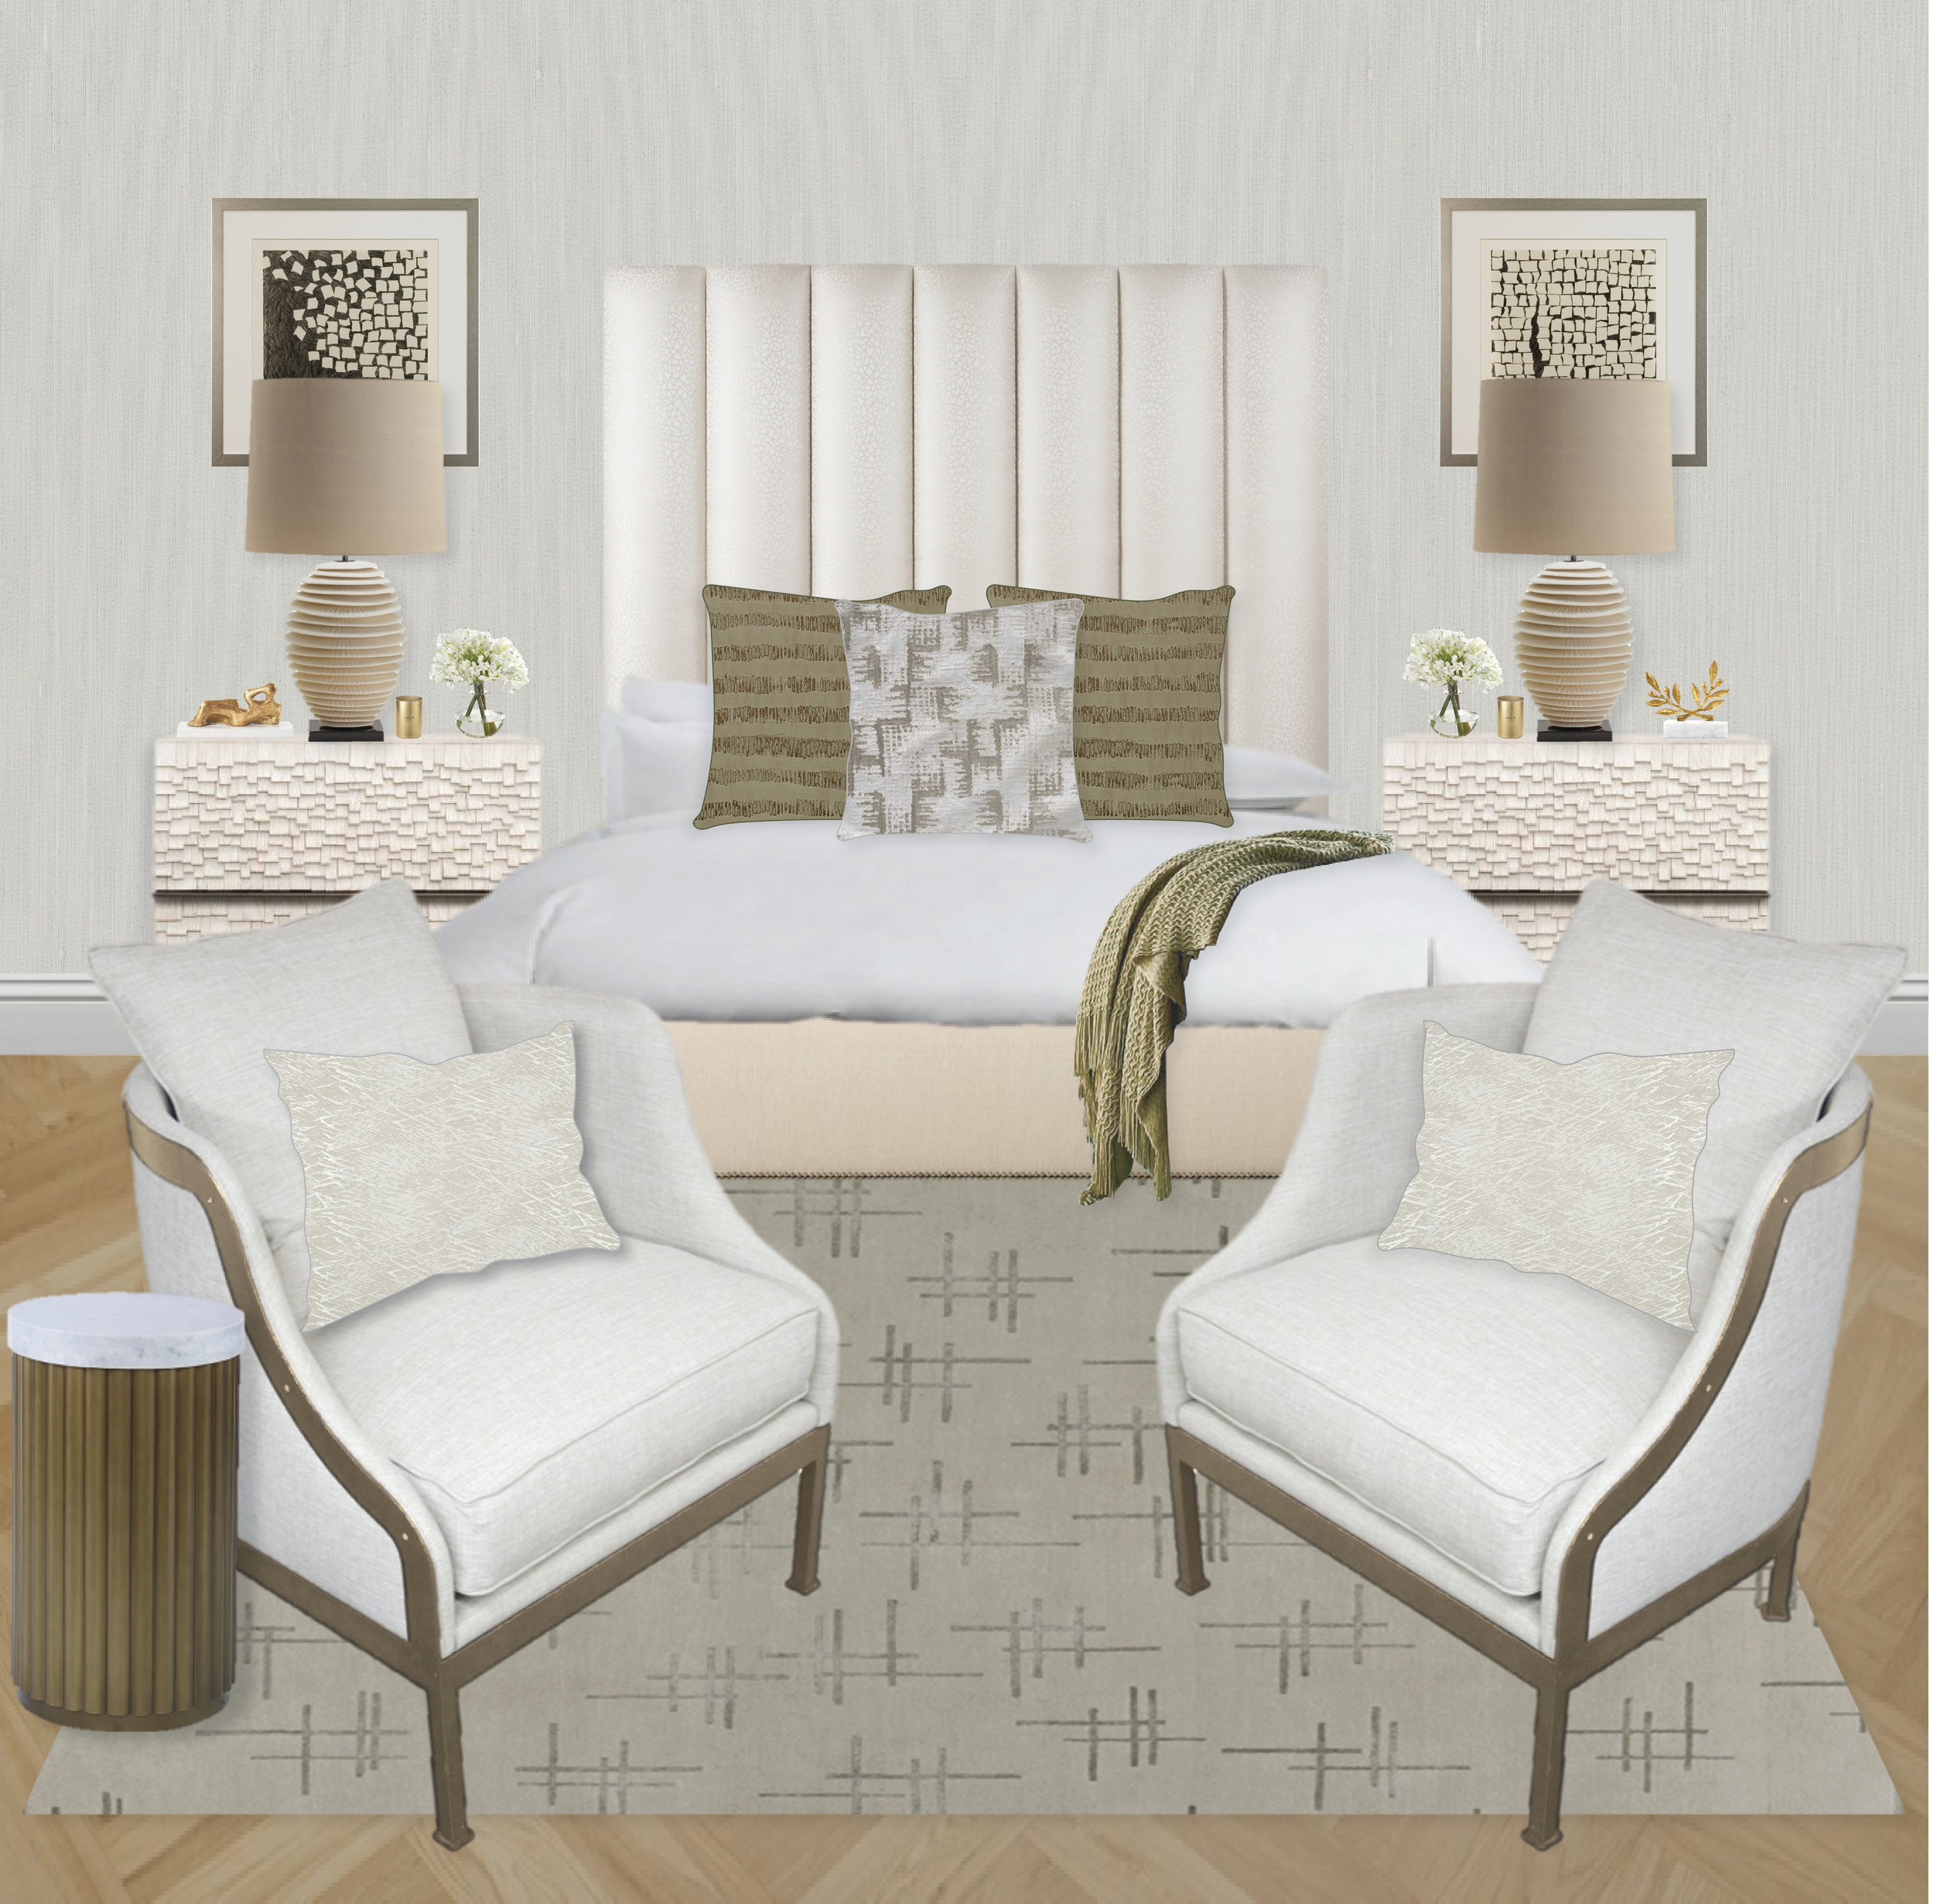 Olive Green and Textured Bedroom by Synonymous   Synonymouss.com copy.jpg